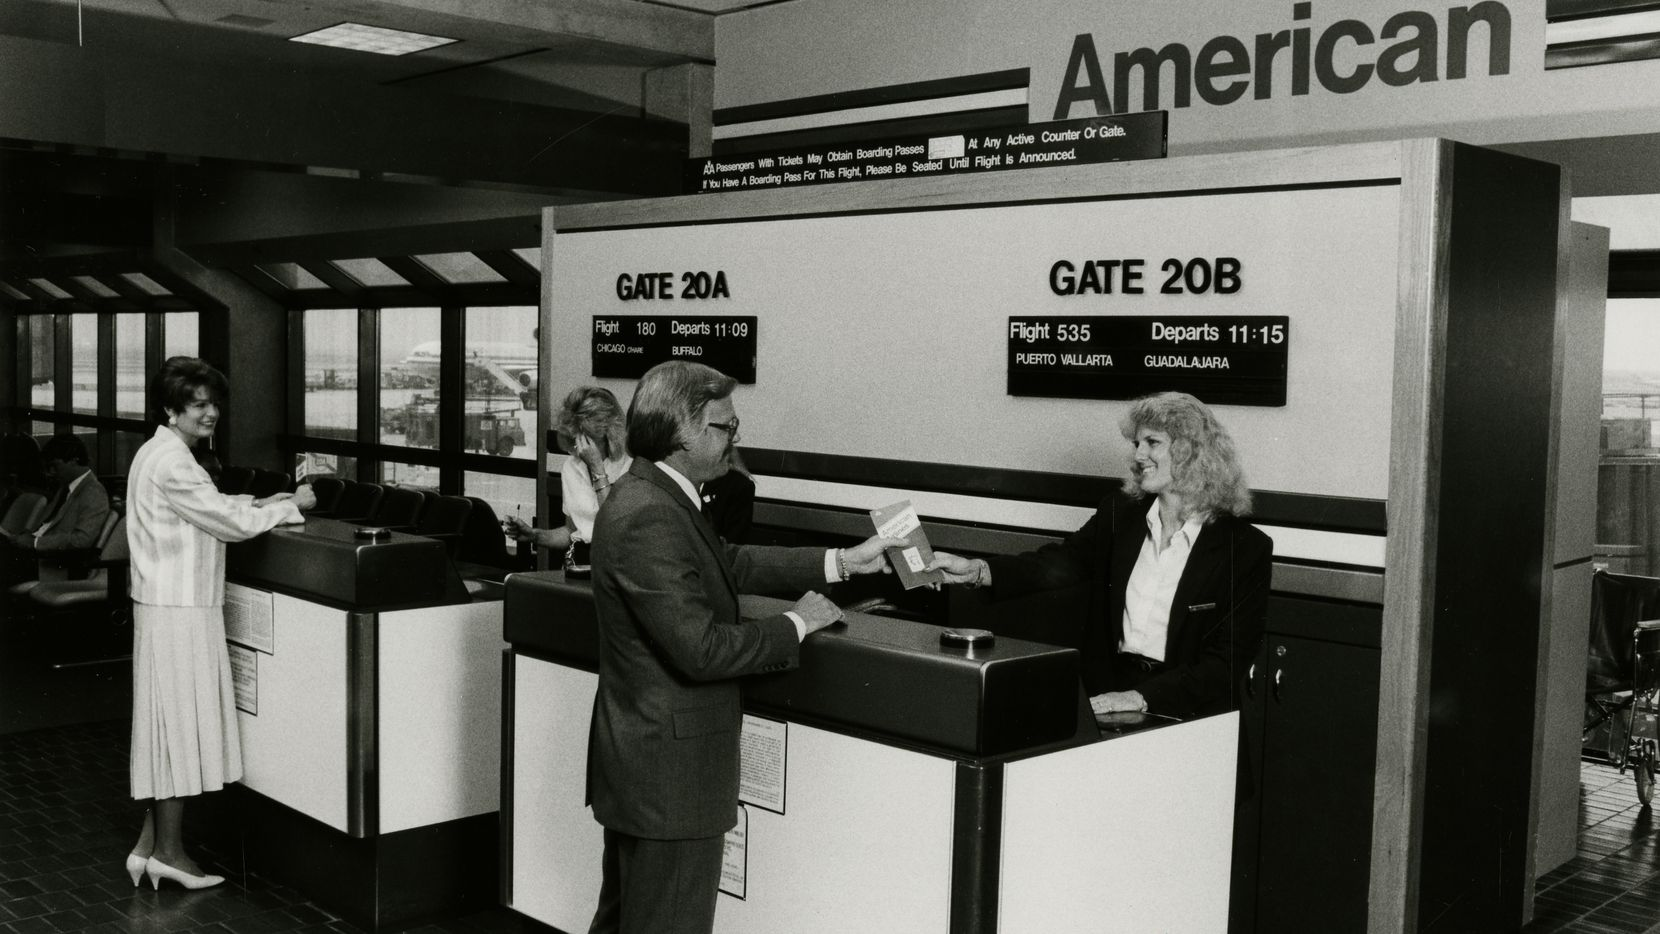 American Airlines employees greet passengers at DFW International Airport in 1981.